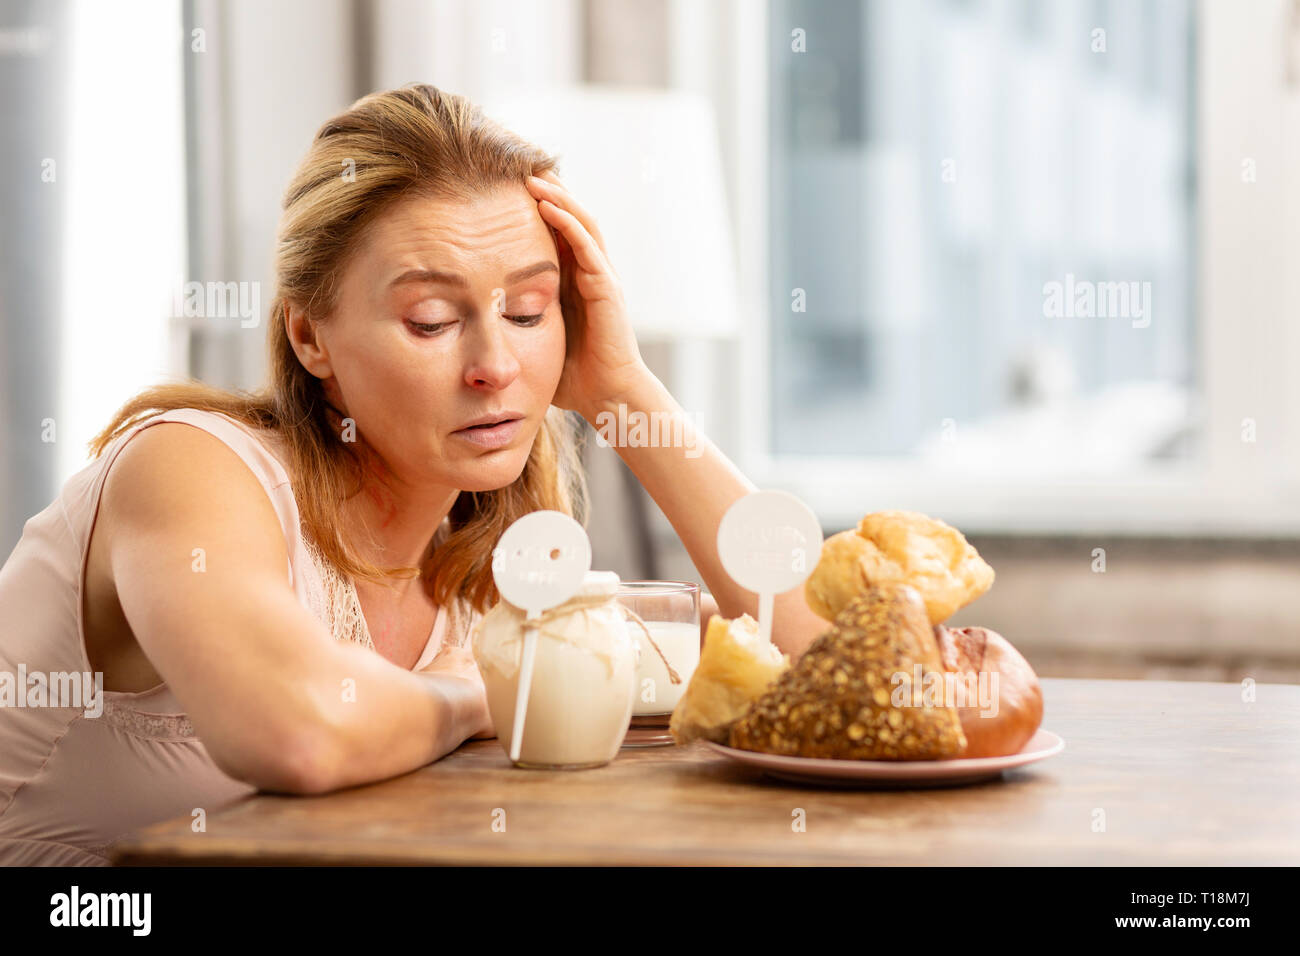 Housewife sitting at the table and looking at foods evoking allergies - Stock Image